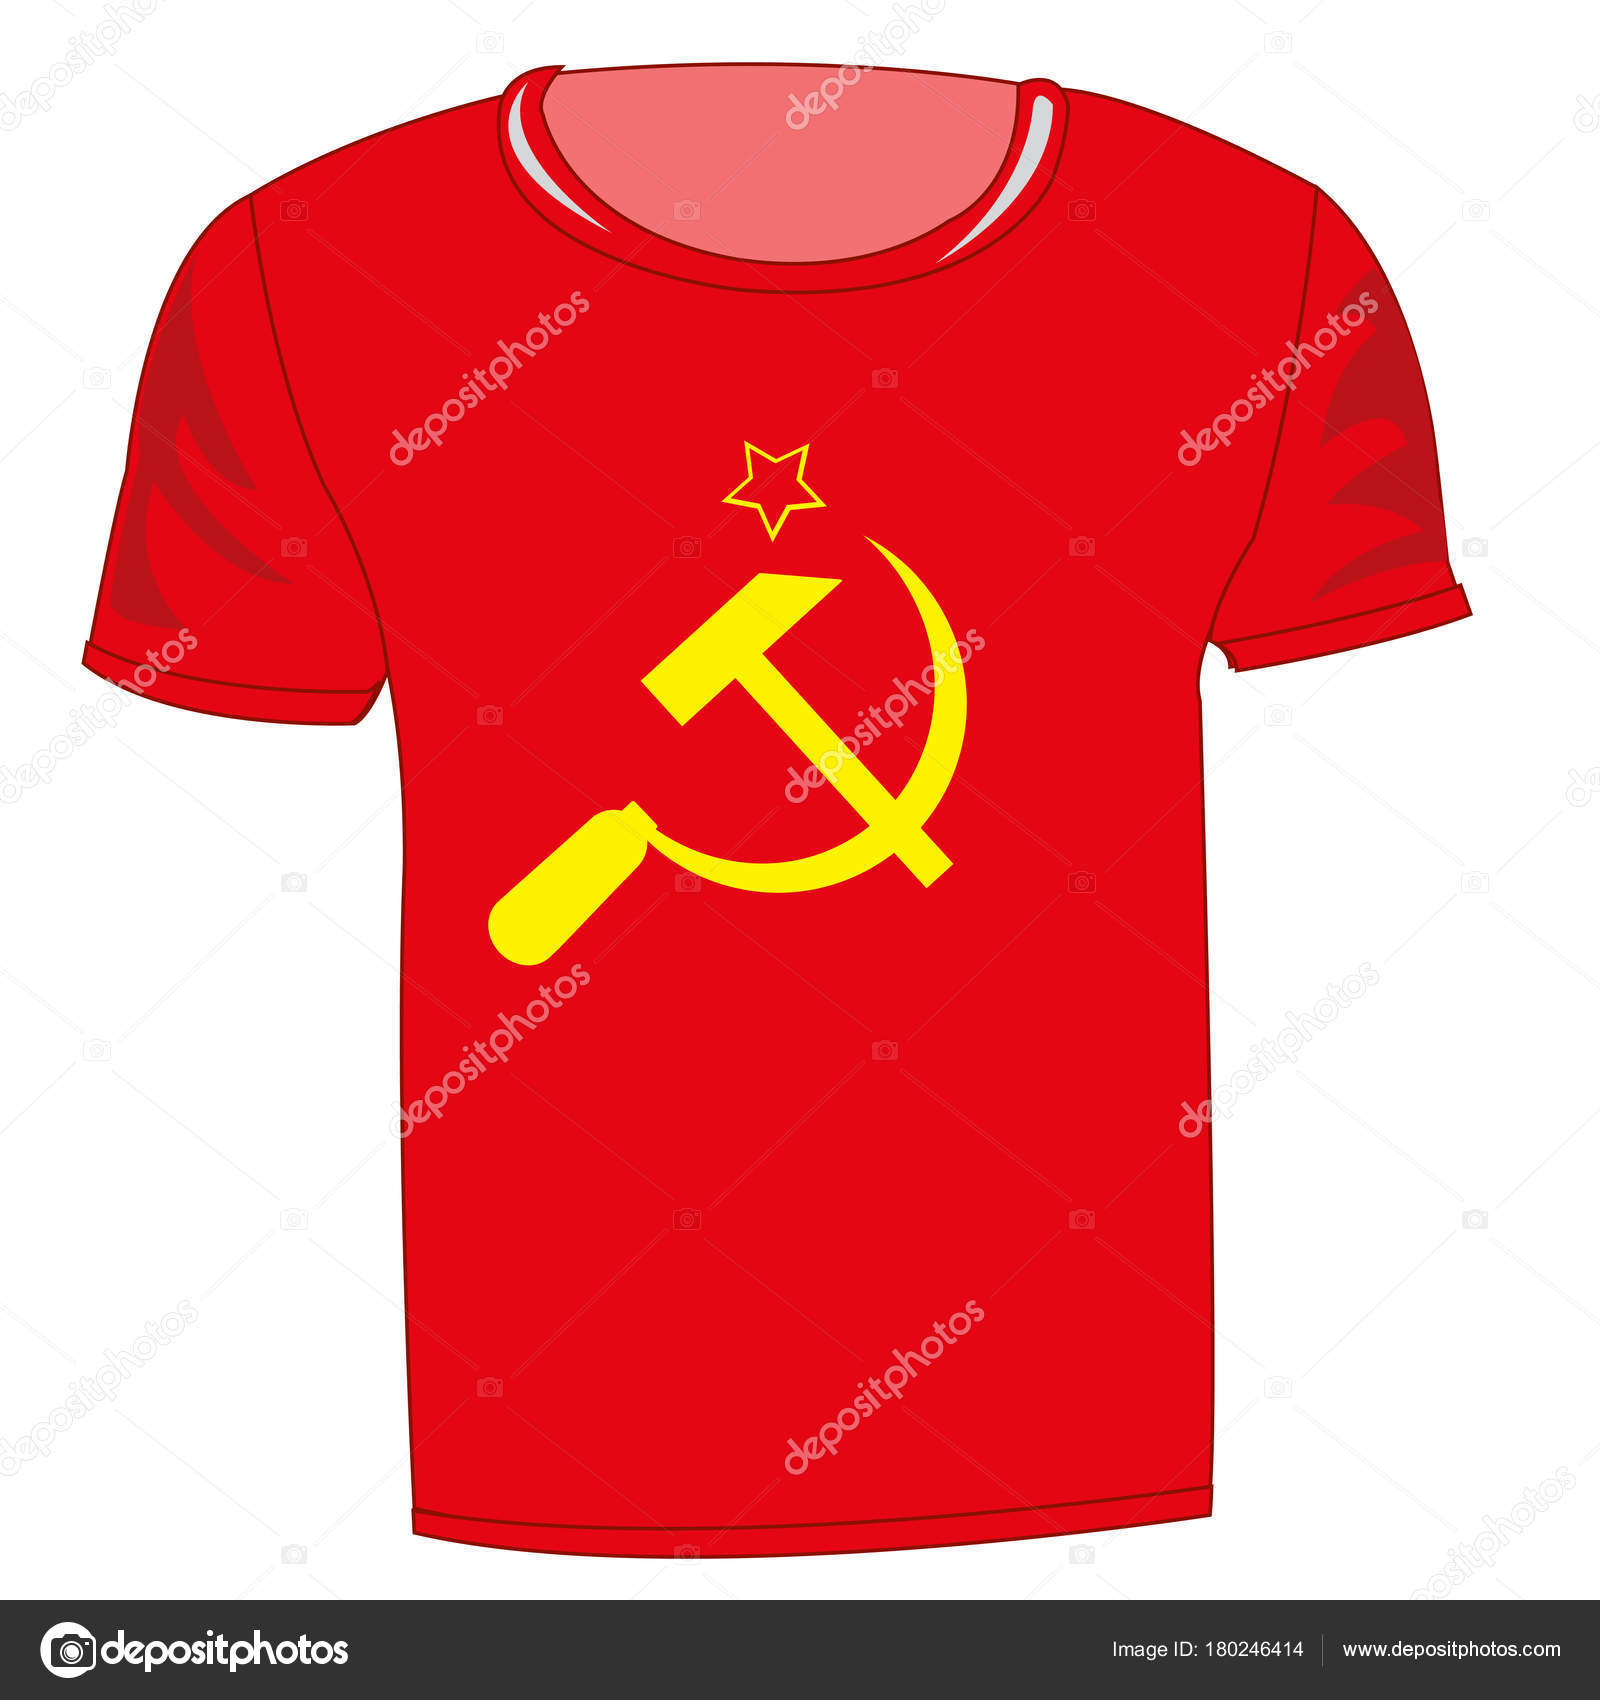 T shirt with symbol communism stock vector cobol1964 180246414 t shirt with symbol communism stock vector 180246414 biocorpaavc